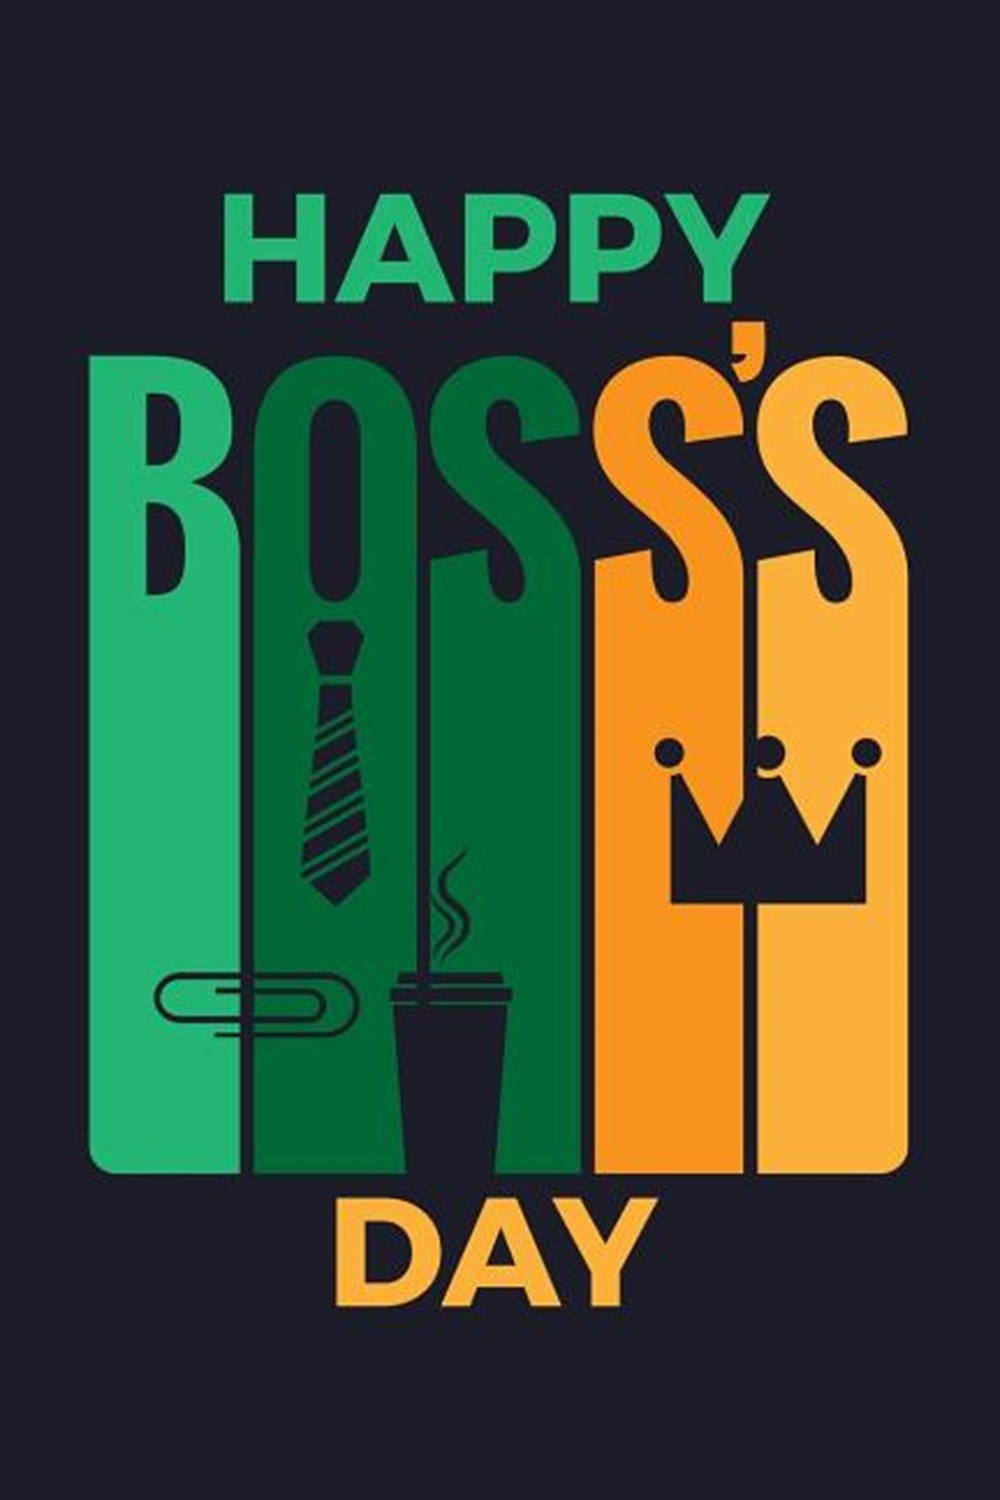 Happy Boss'S Day Blank Paper Sketch Book - Artist Sketch Pad Journal for Sketching, Doodling, Drawin